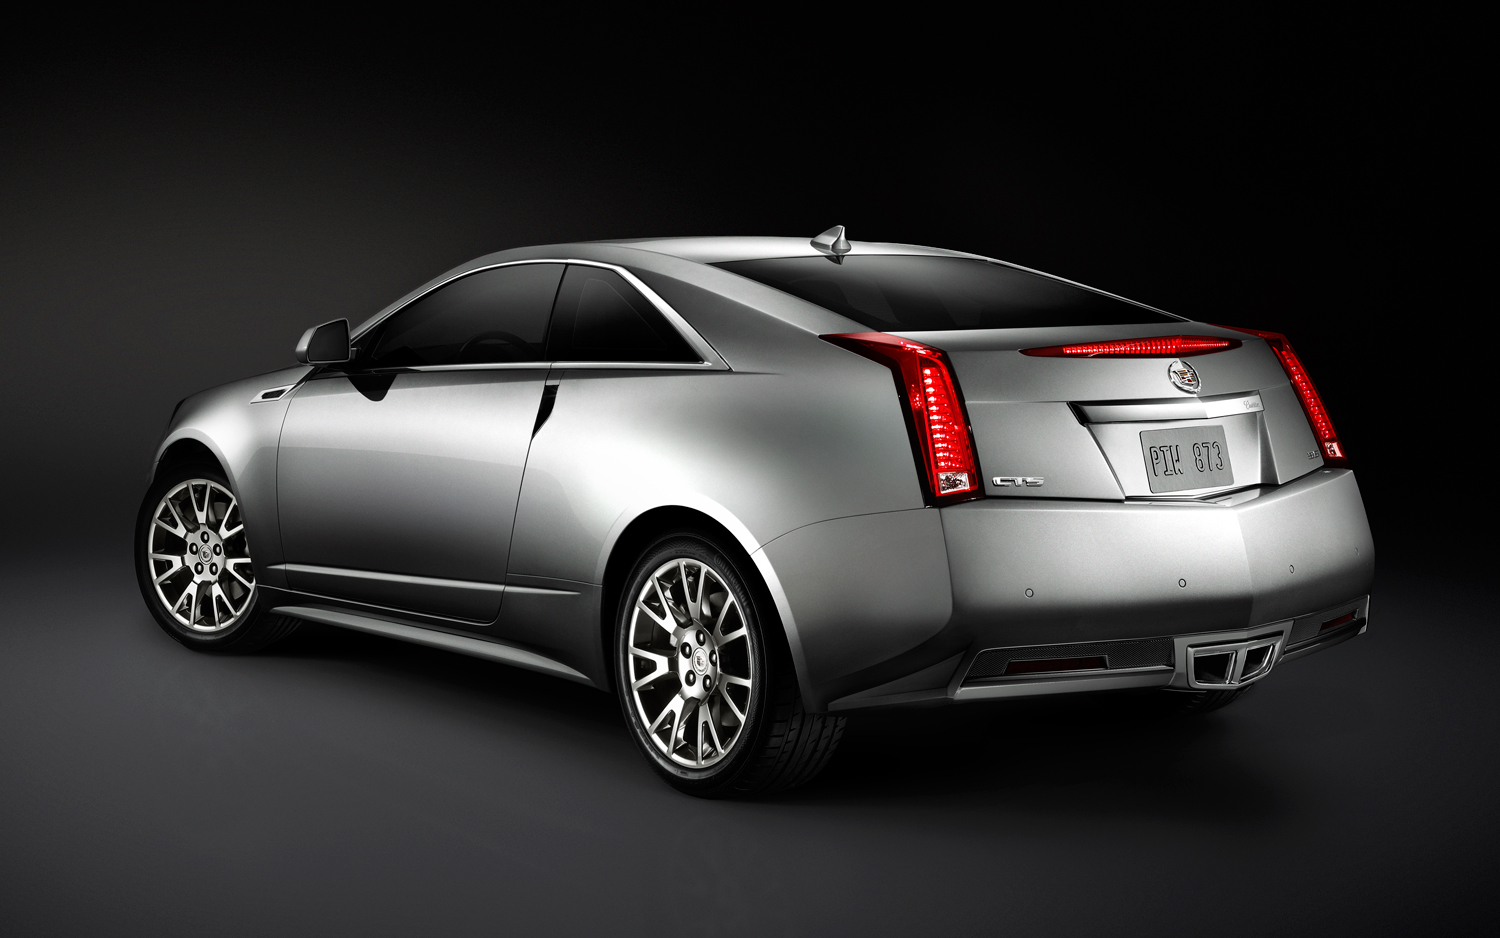 cadillac cts coupe 2012 pictures #15